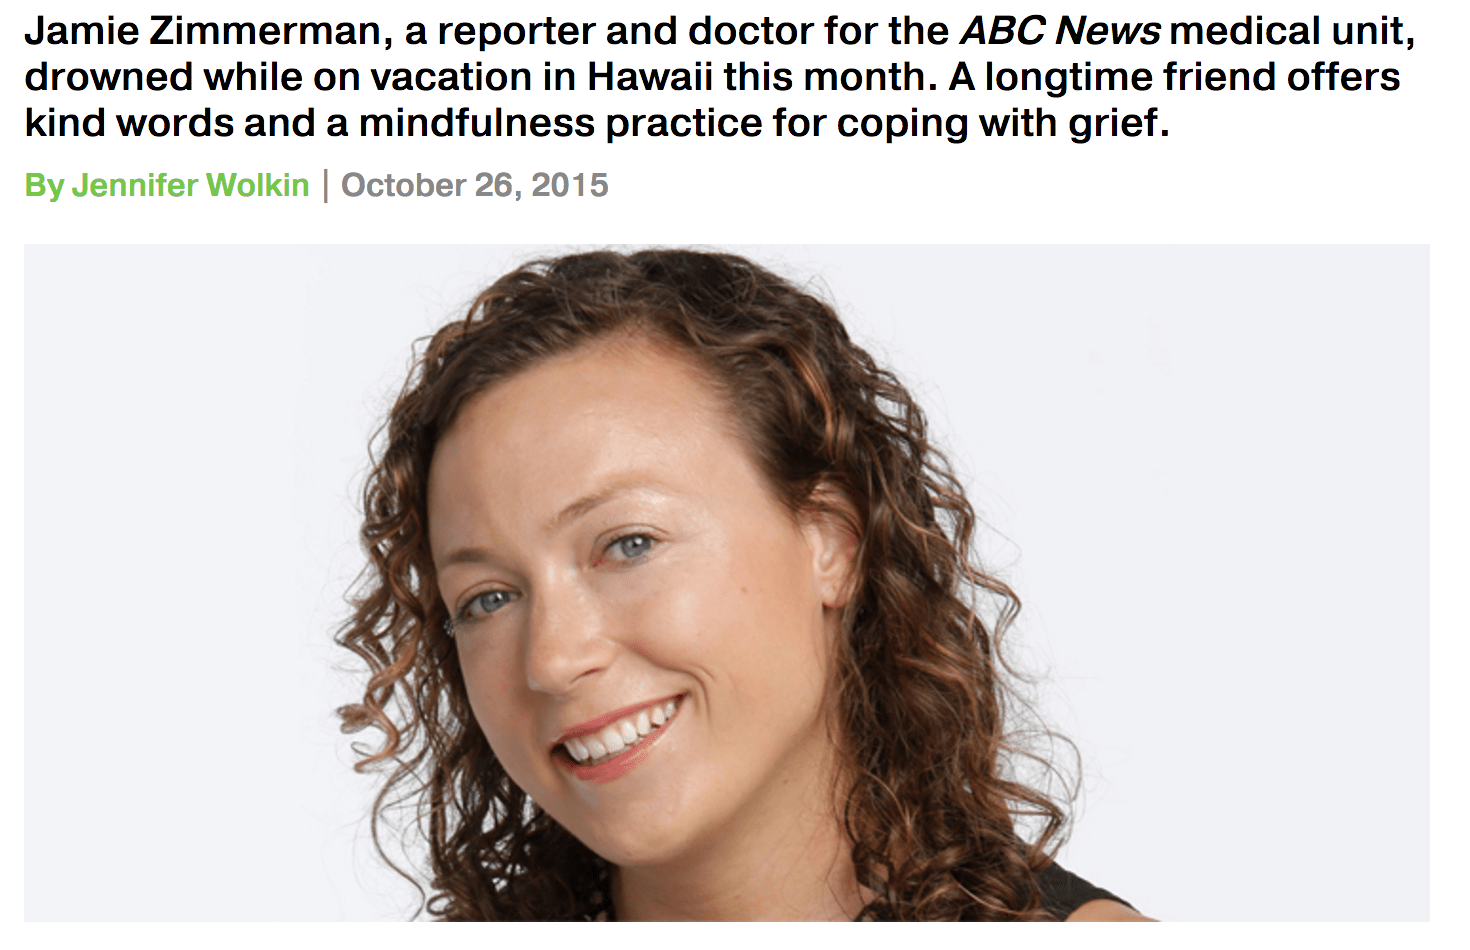 Remembering Jamie Zimmerman, ABC's Meditation Doctor